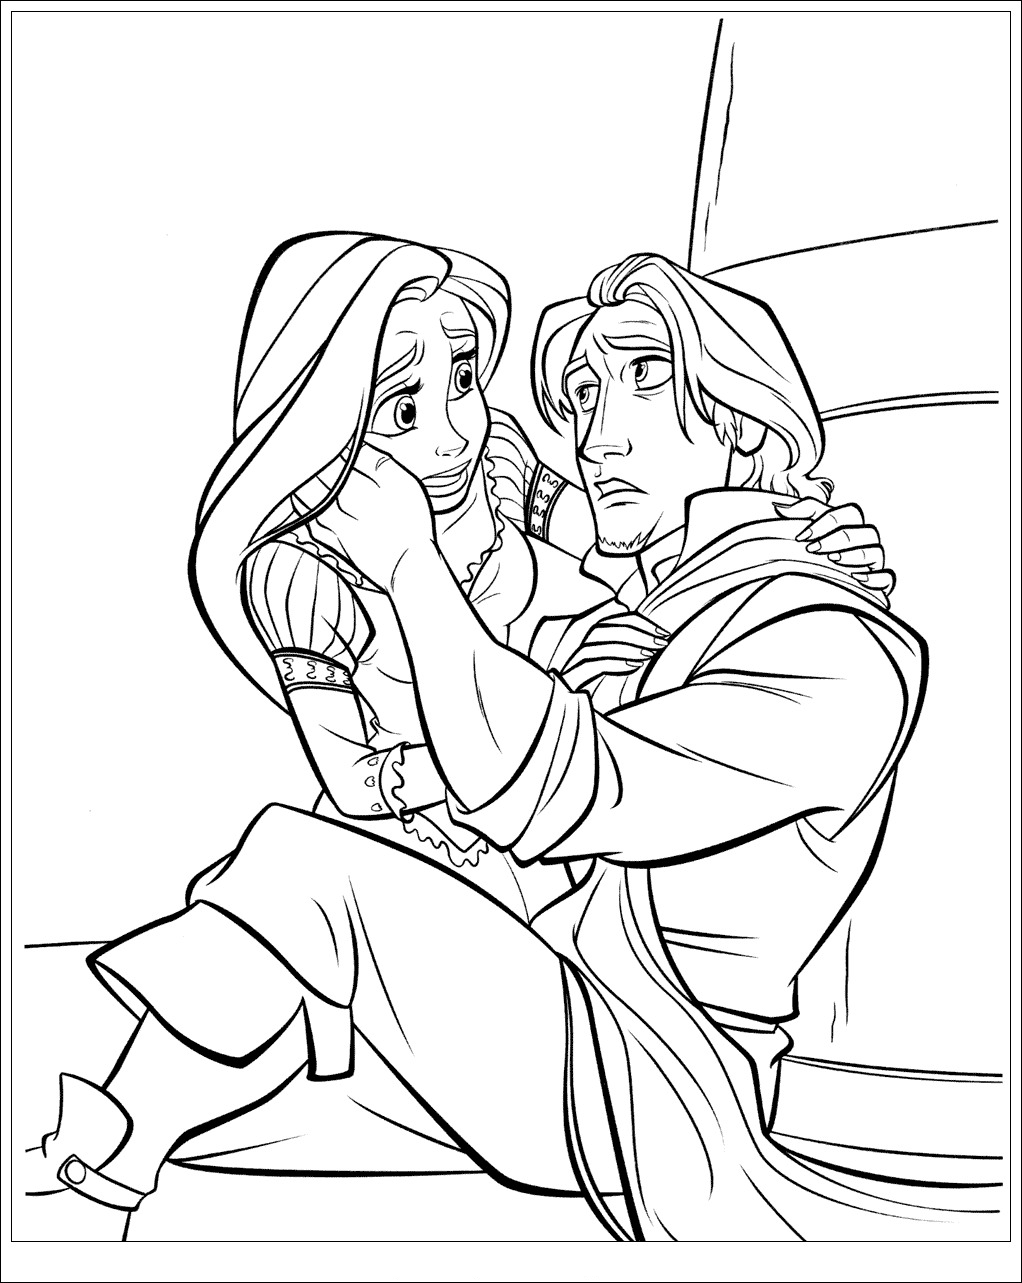 Tangled To Download Tangled Kids Coloring Pages